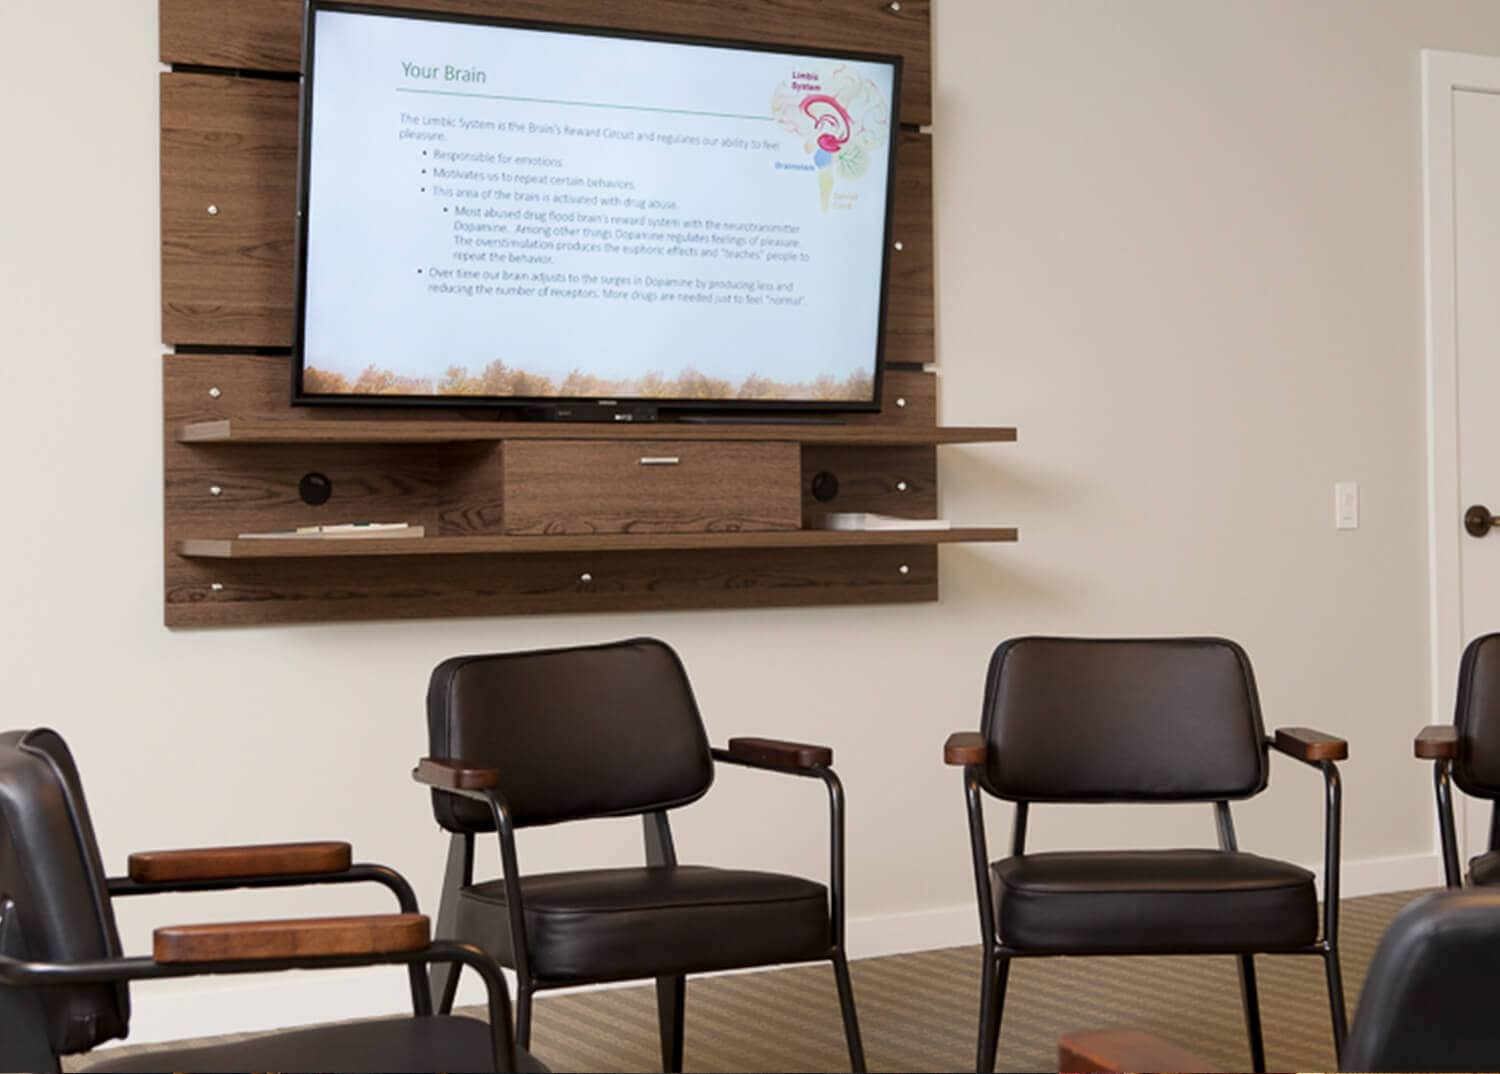 A group meeting and presentation room at Mountainside Addiction Treatment Center in Canaan, CT.